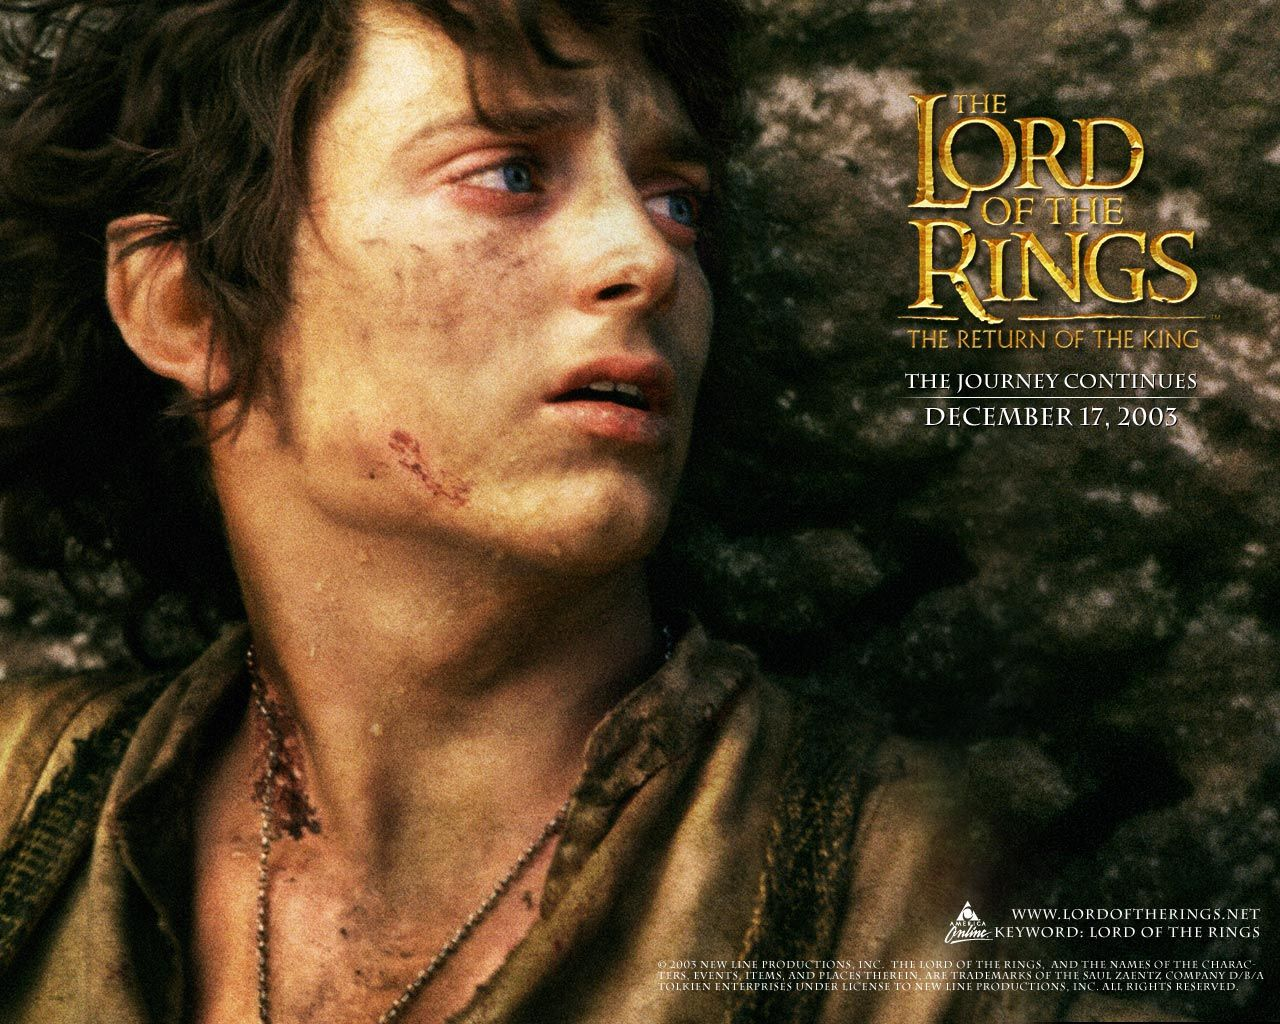 than undefined dorkly took mordor other ring frodo one to if the anyone rings post